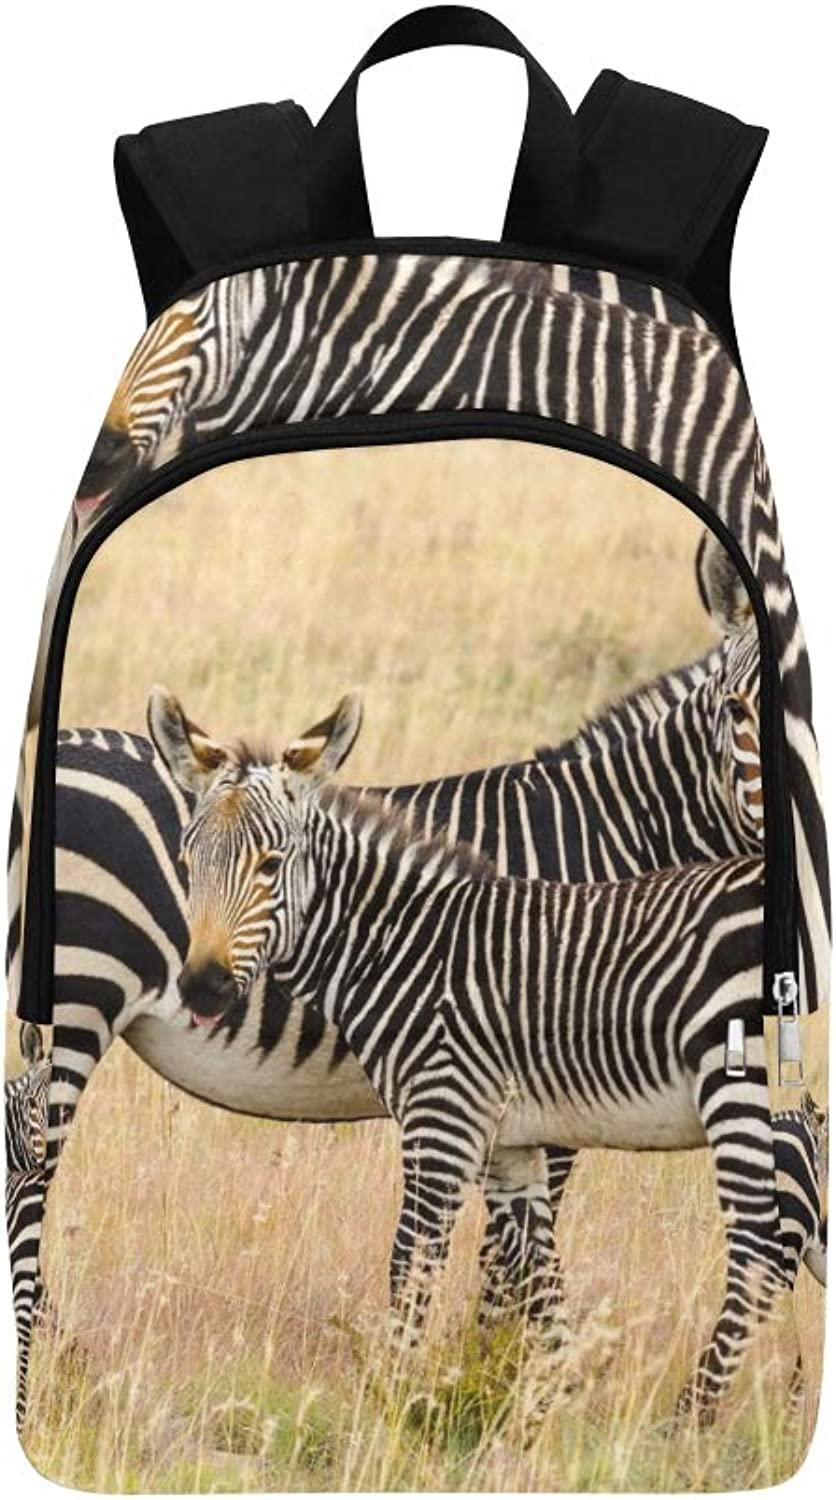 Cape Mountain Zebra Equus Zebra Zebra Casual Daypack Travel Bag College School Backpack for Mens and Women